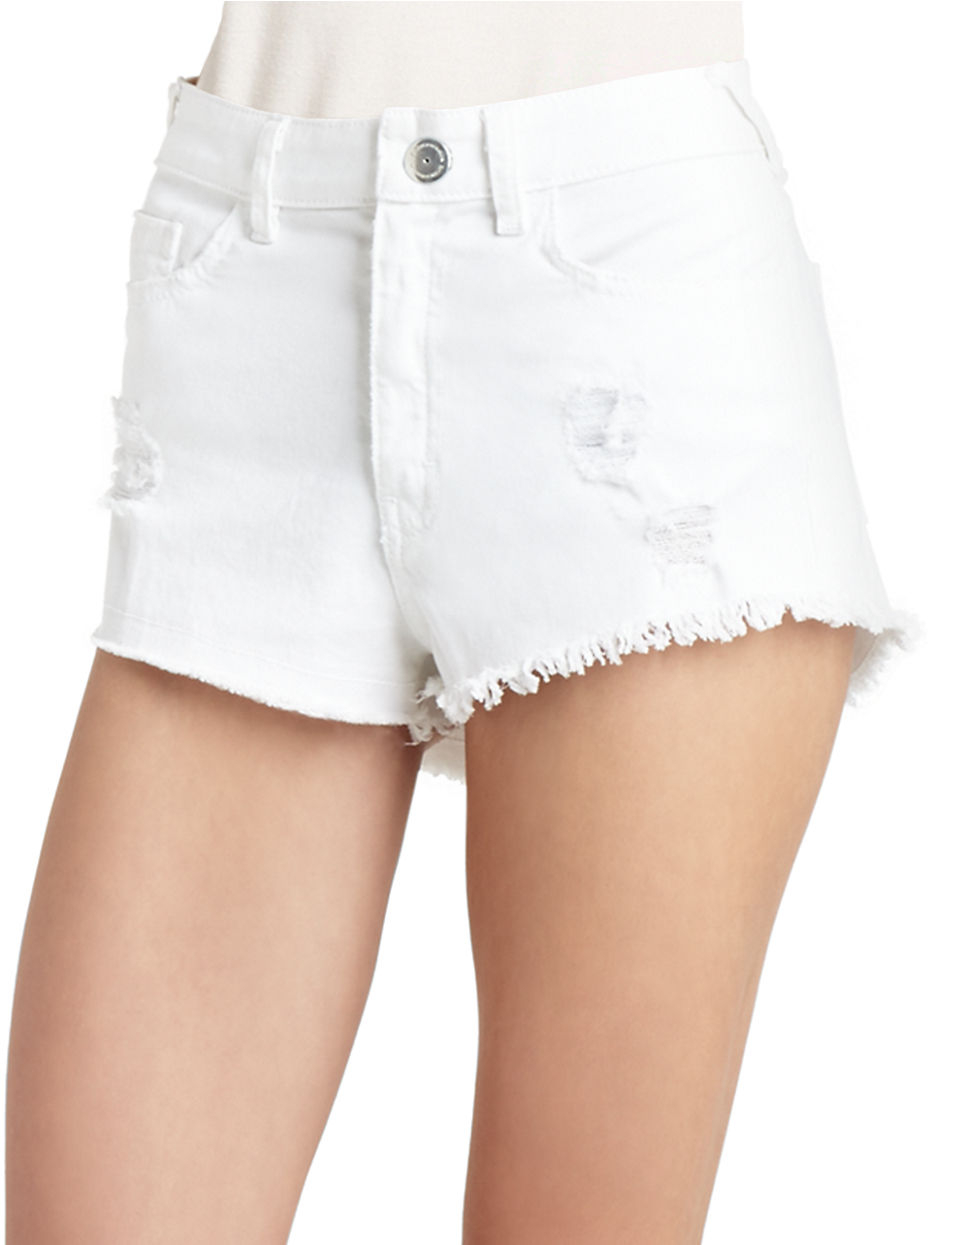 Shop Hapari Swimwear for the modest white tummy tuk high waisted swim short. These shorts are comfortable and appropriate for the beach or pool.